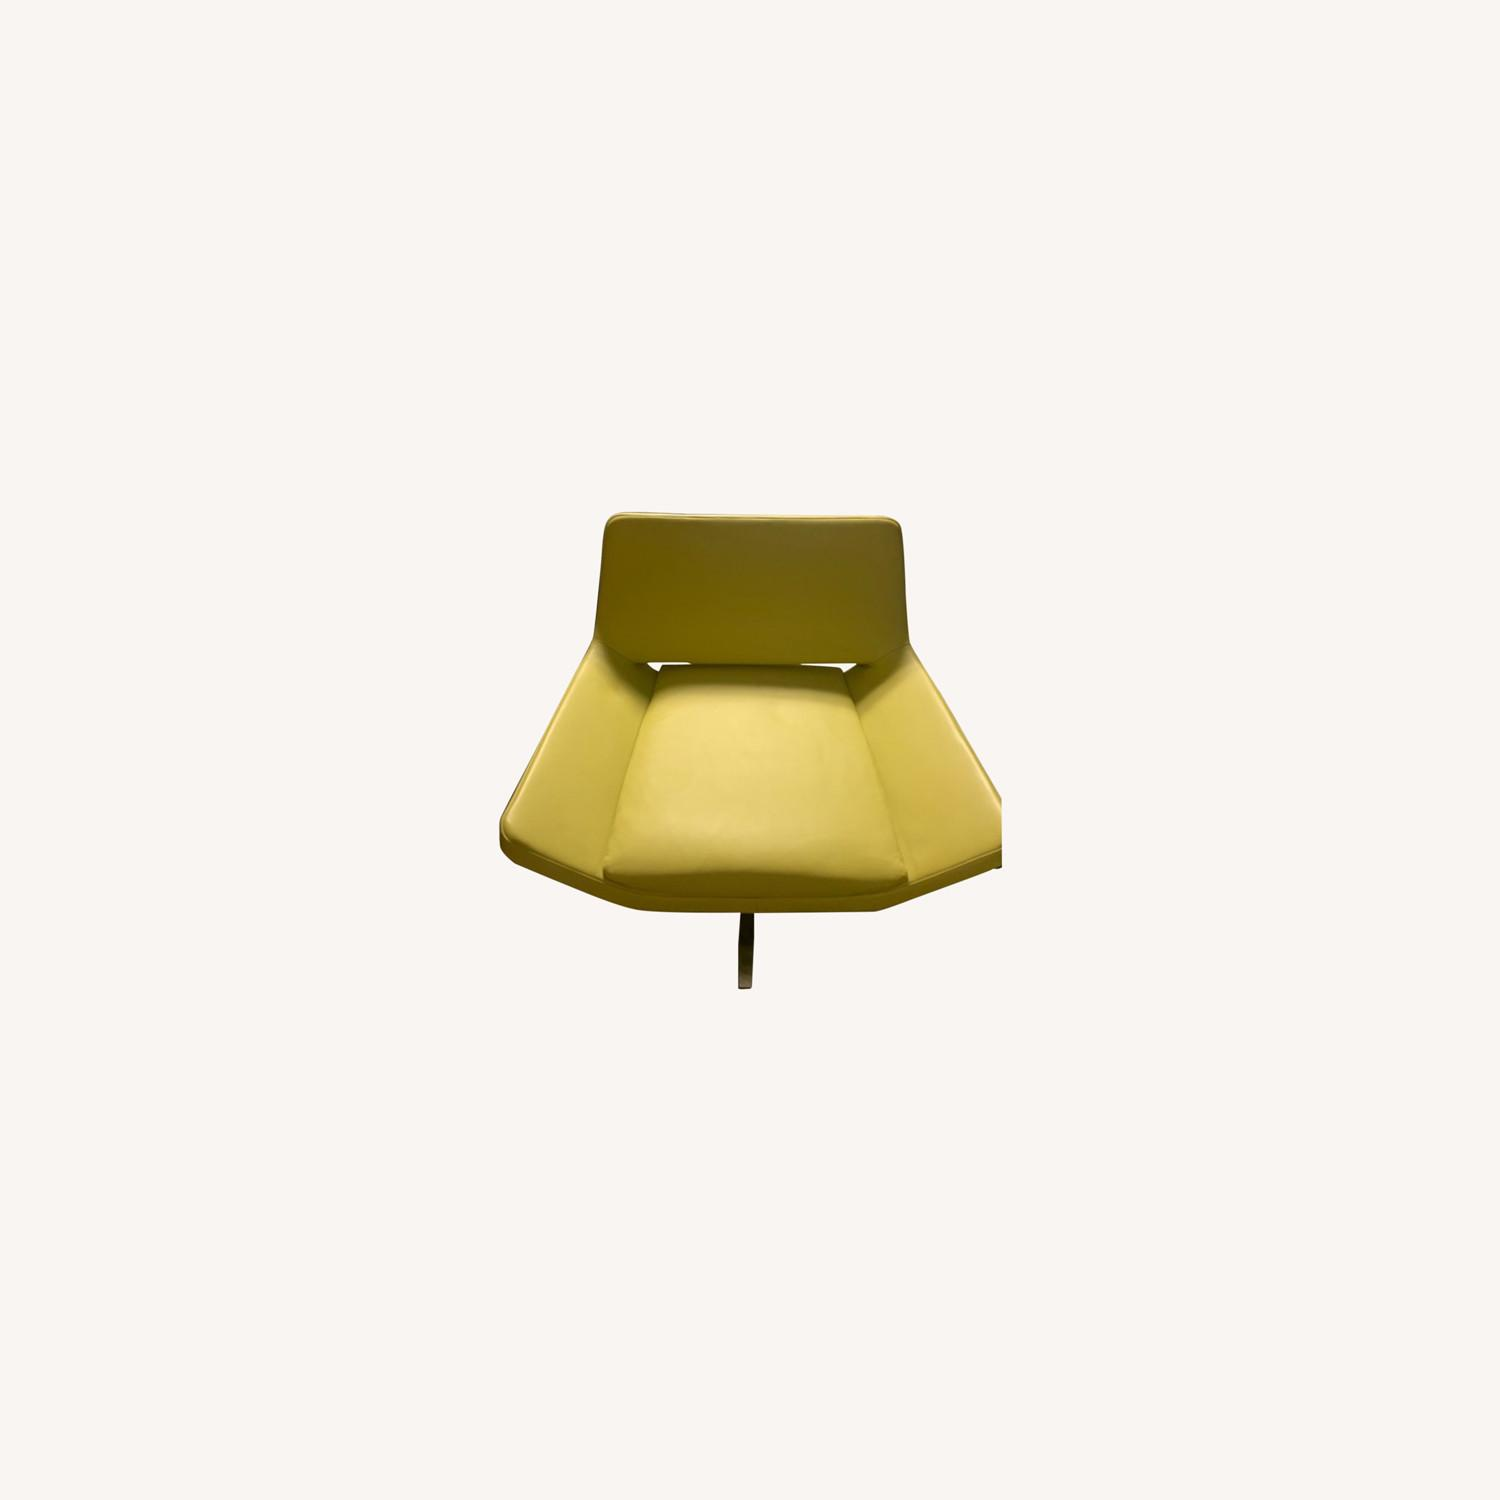 Modern Lime Green Leather Chairs - image-0